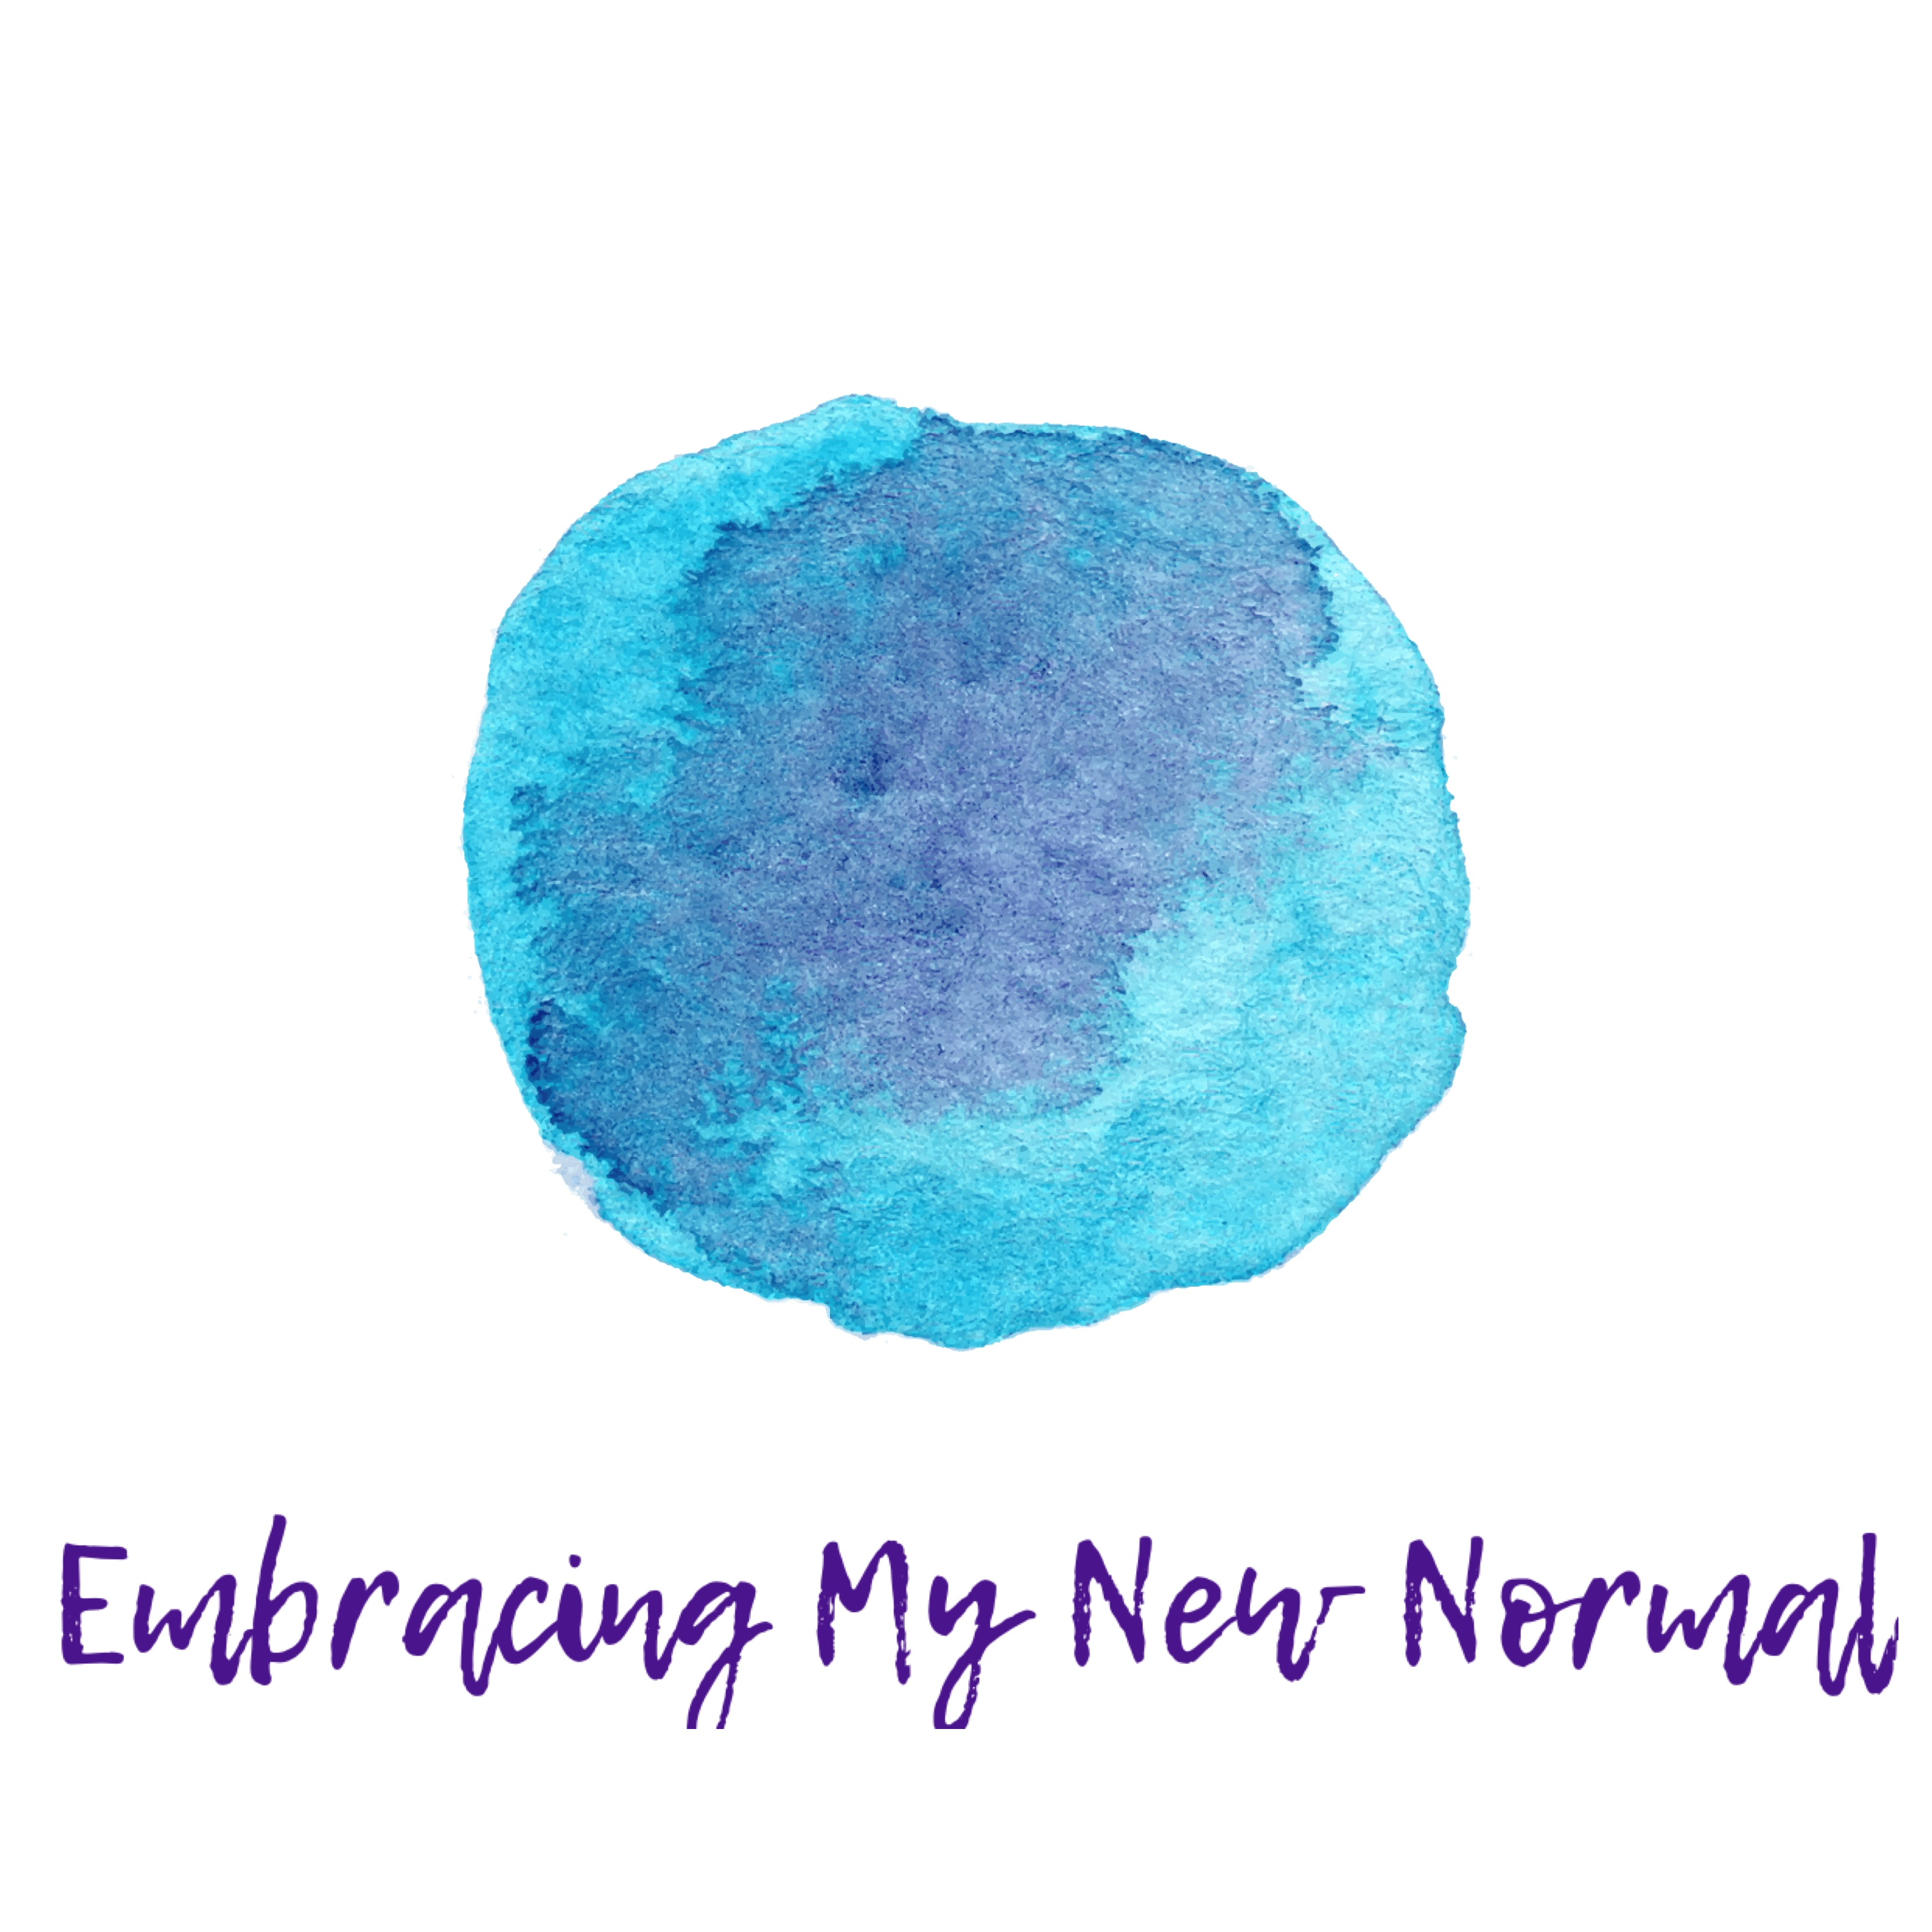 Welcome to Your New Normal: Embracing the Present